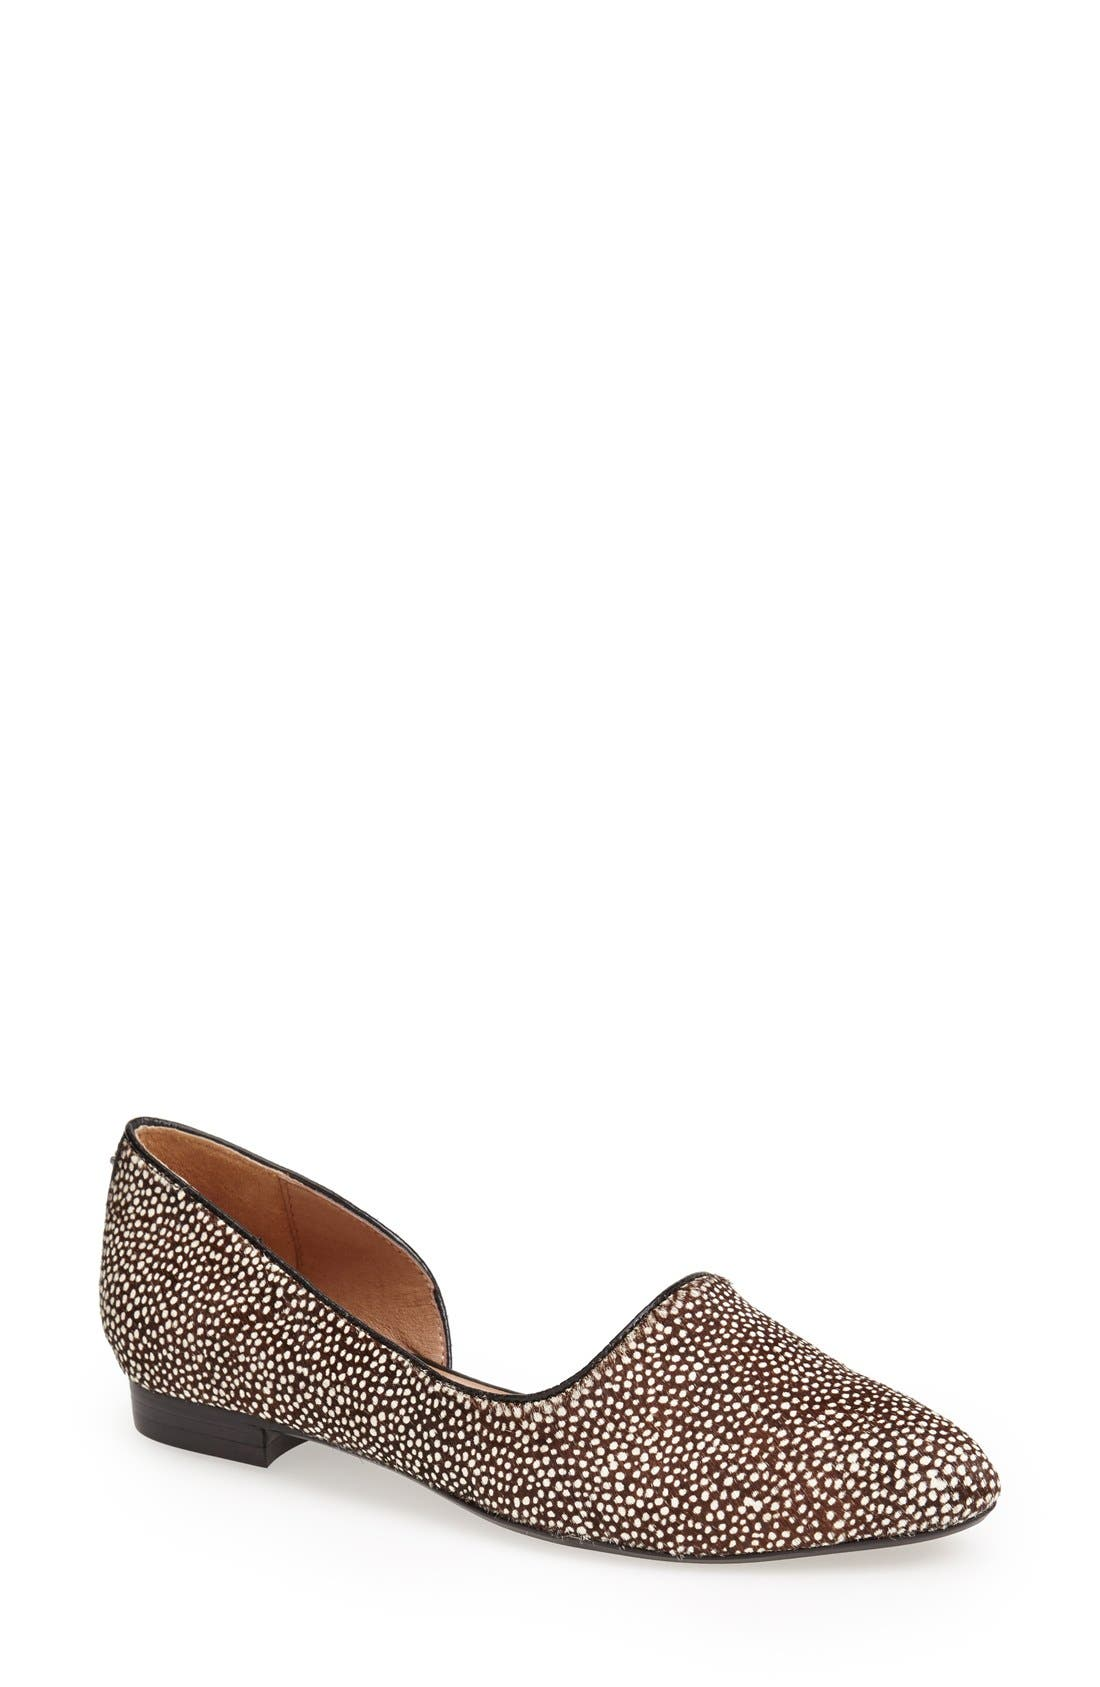 Main Image - Nina Originals 'Quip' Calf Hair Pointed Toe Flat (Women)